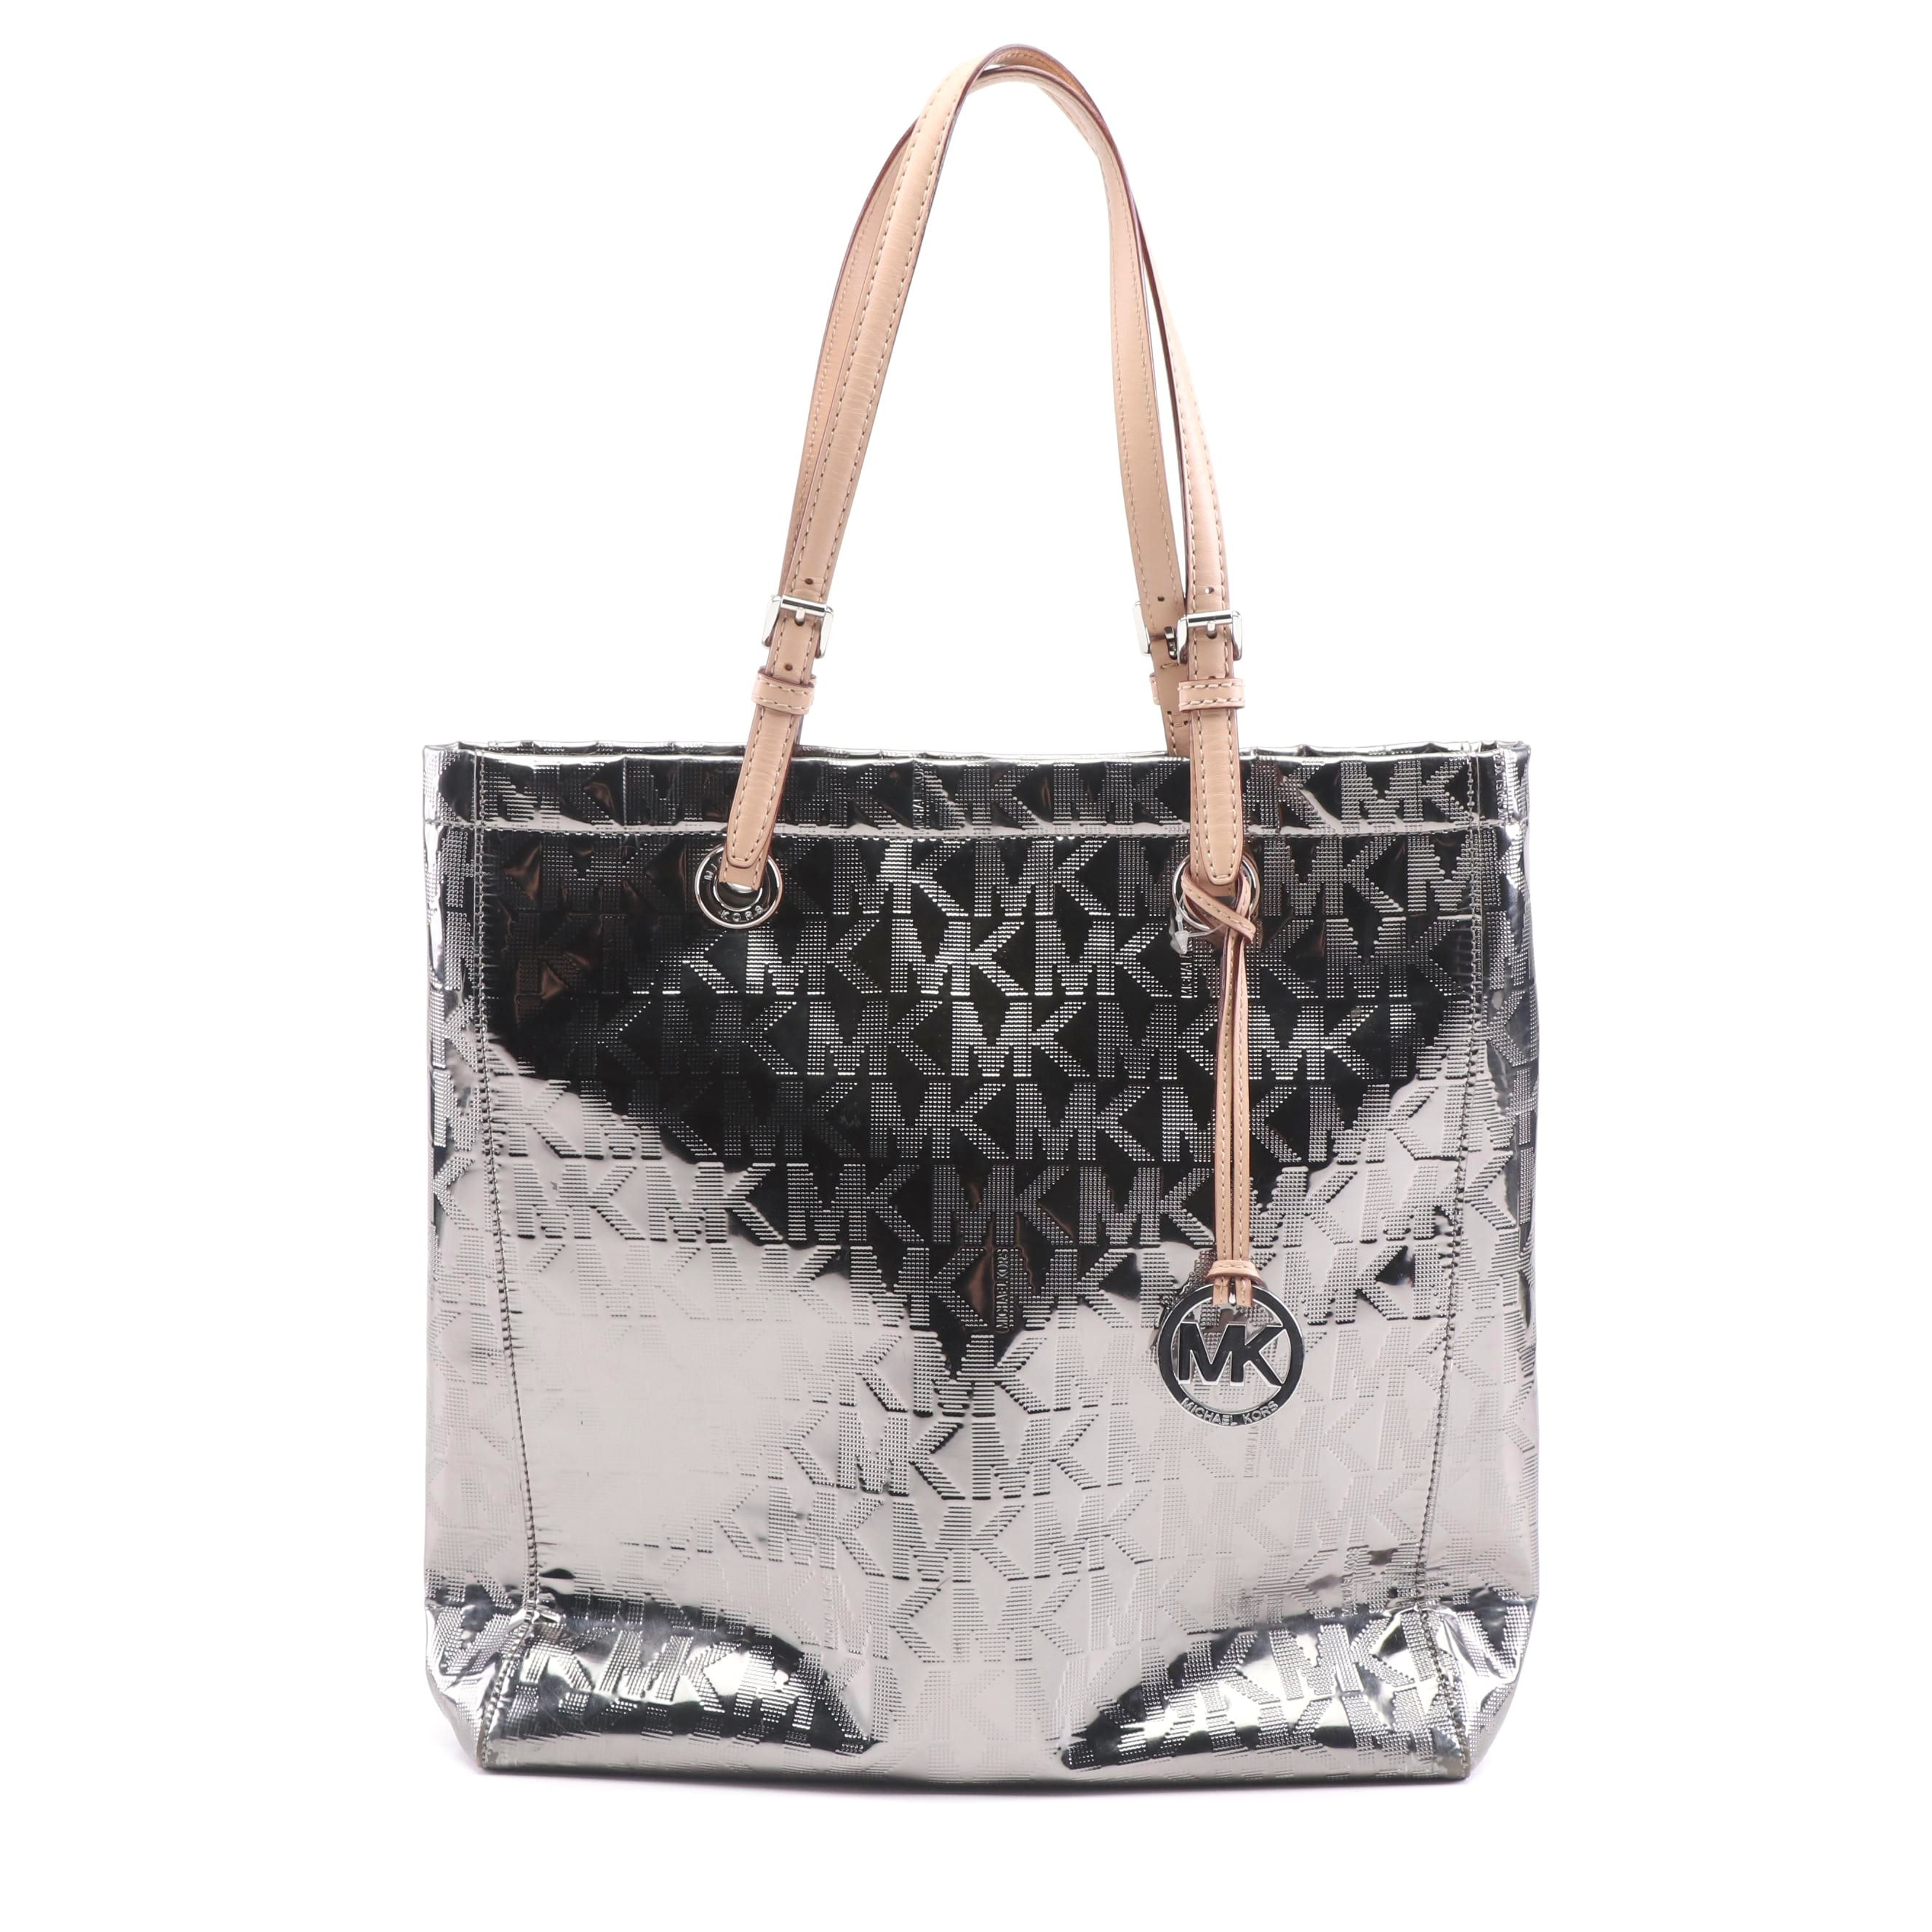 MICHAEL Michael Kors Metallic Tote Bag with Leather Handles